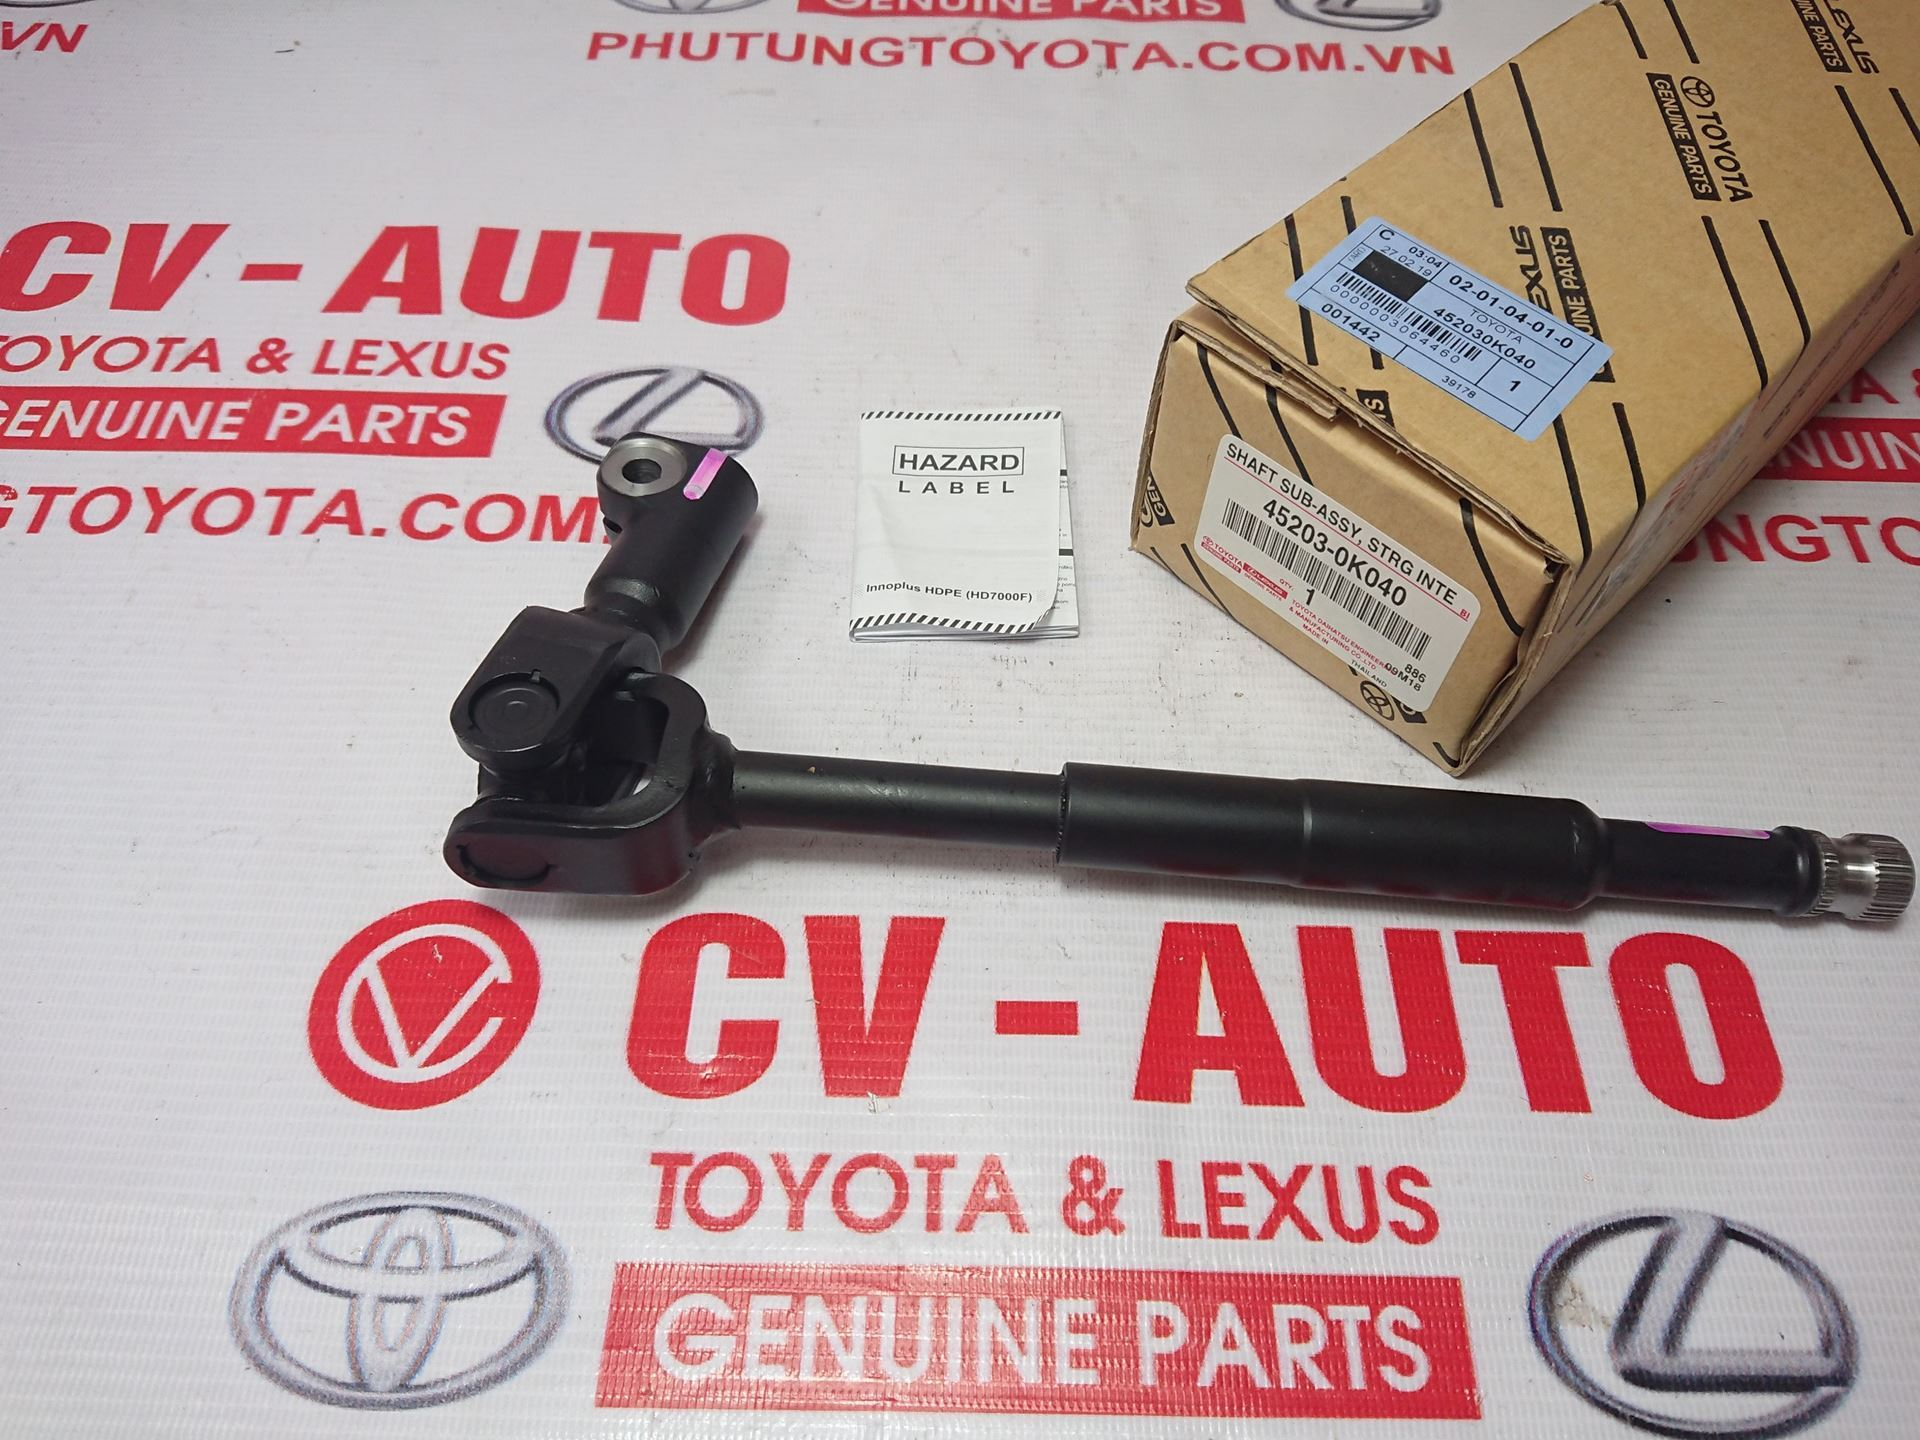 Picture of 45203-0K040 Khớp lái dưới Toyota Fortuner, Hilux giá tốt